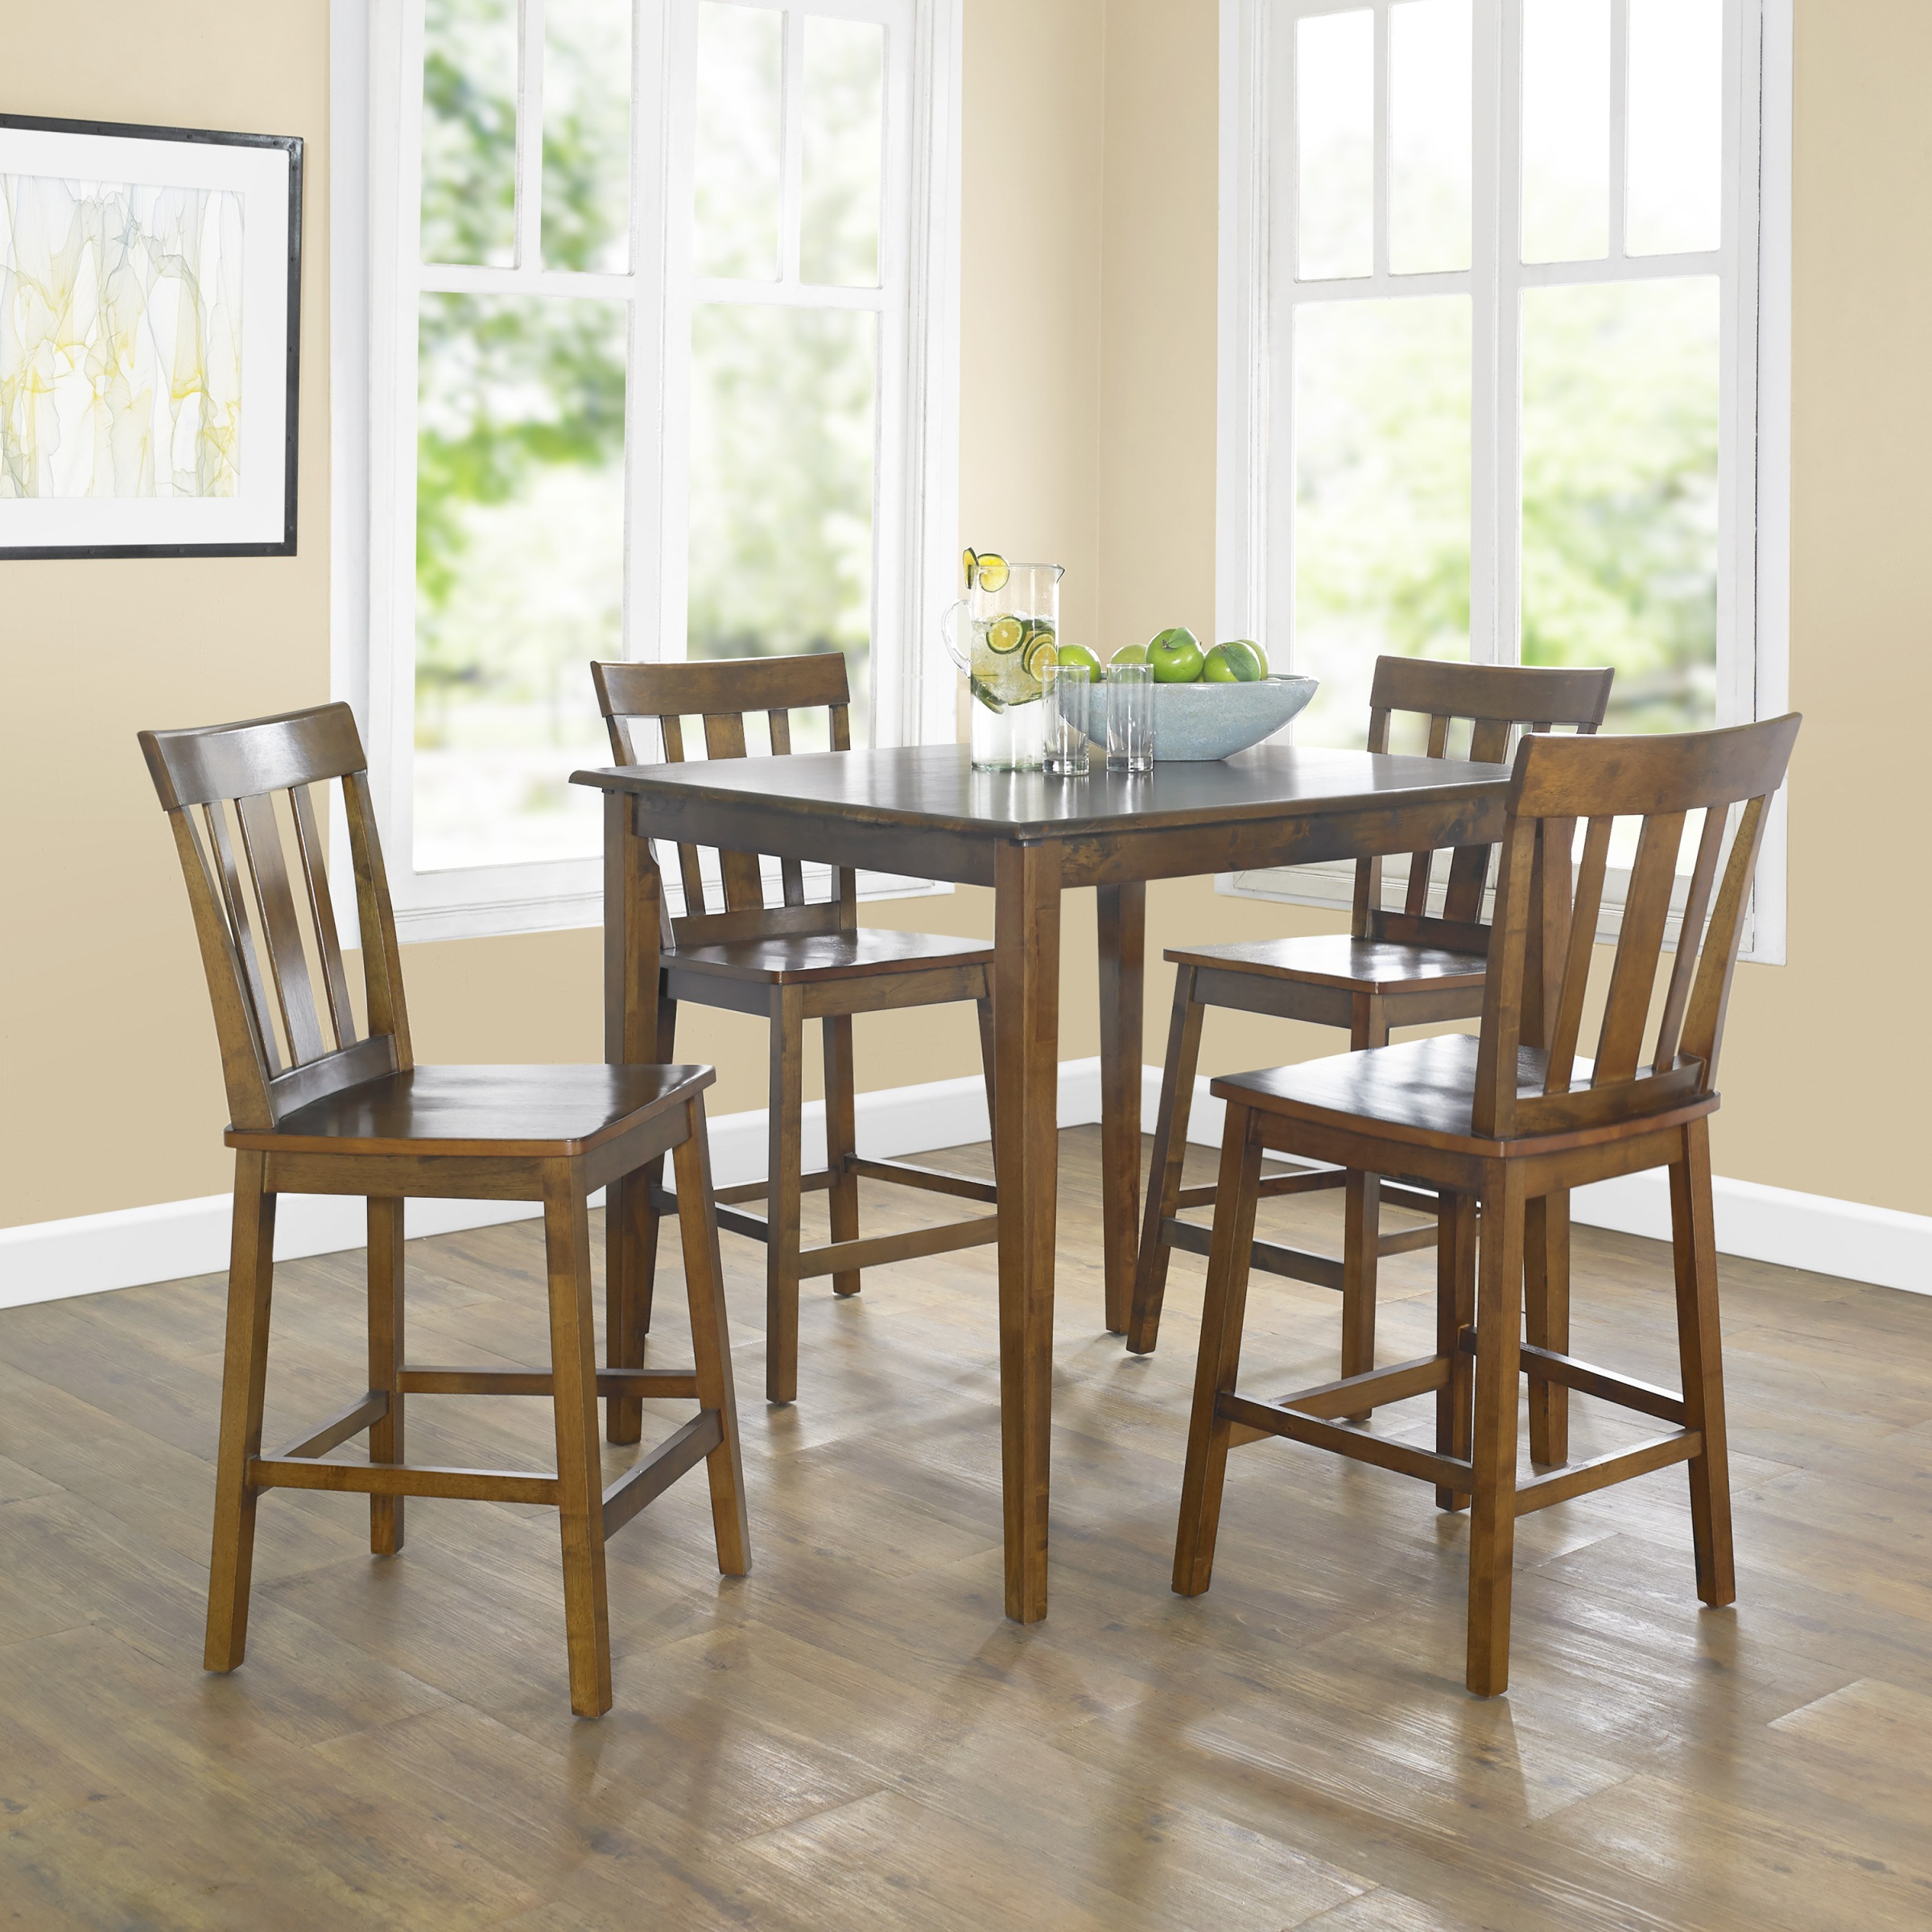 Mainstays 5 Piece Mission Style Dining Set, Cherry